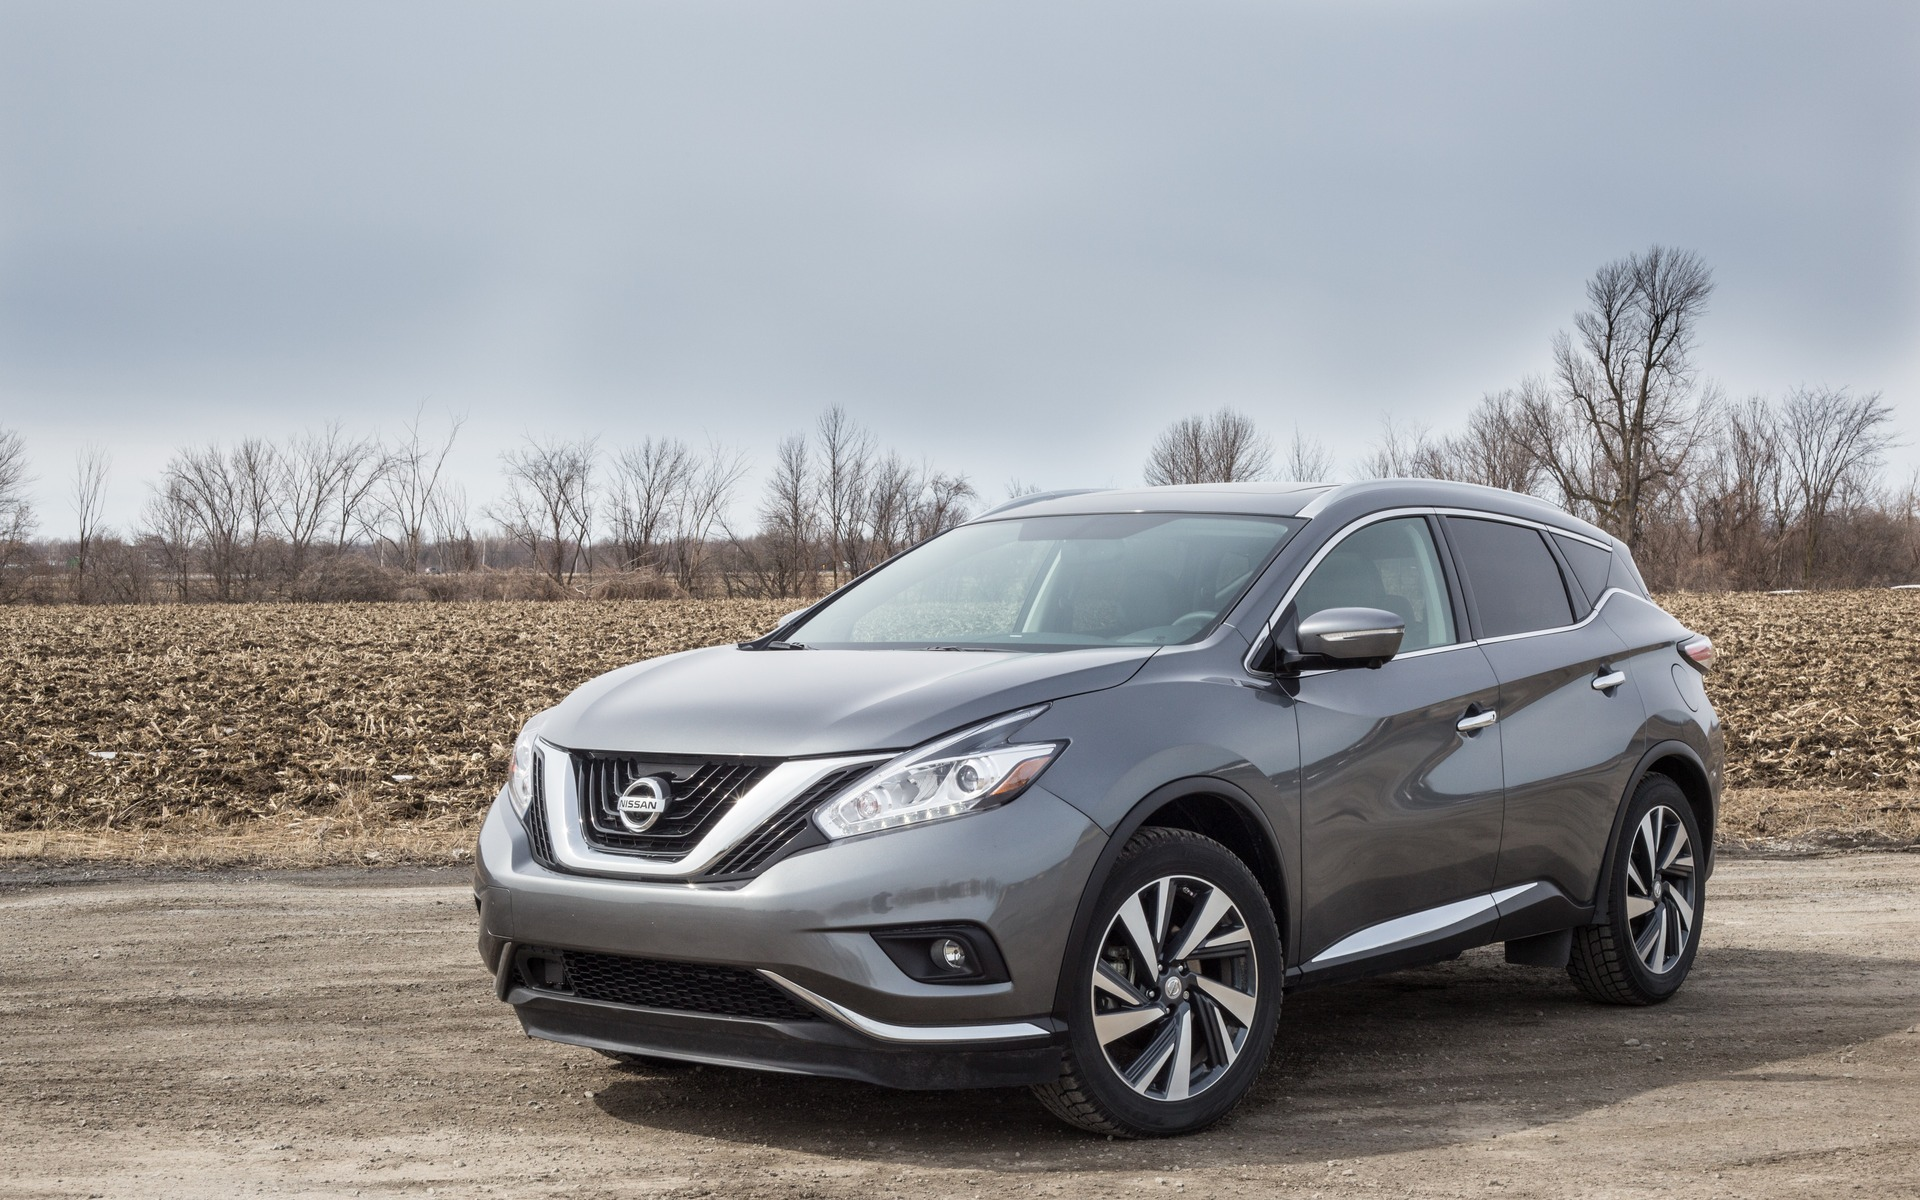 2016 Nissan Murano - News, reviews, picture galleries and videos - The Car  Guide